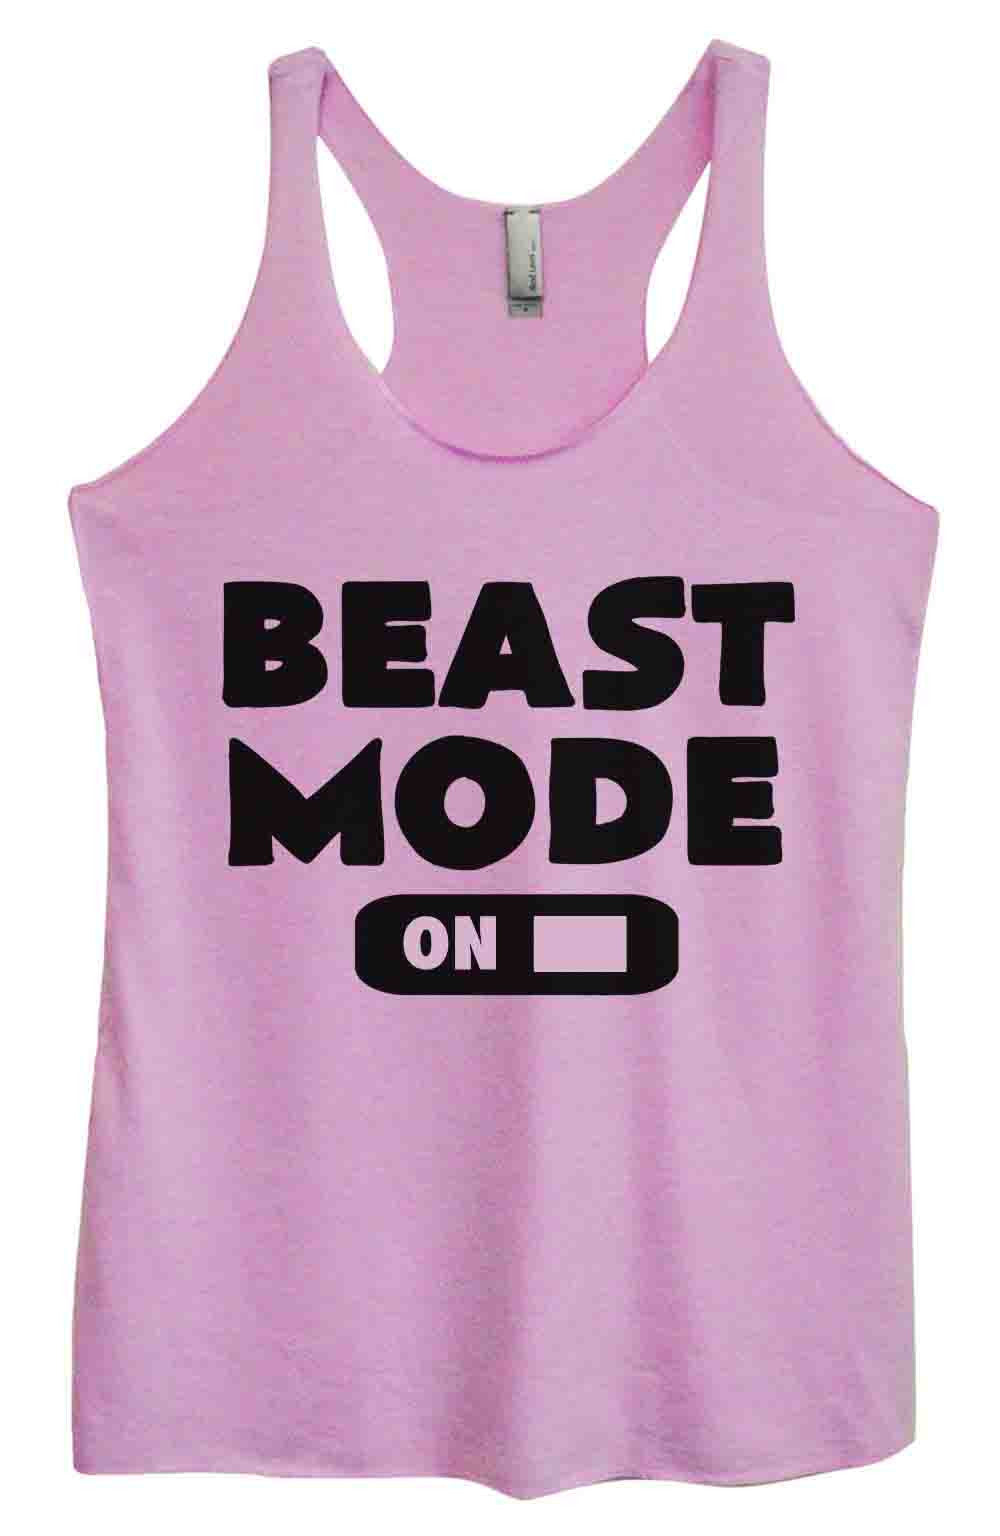 Womens Fashion Triblend Tank Top - Beast Mode On - Tri-764 - Funny Shirts Tank Tops Burnouts and Triblends  - 4